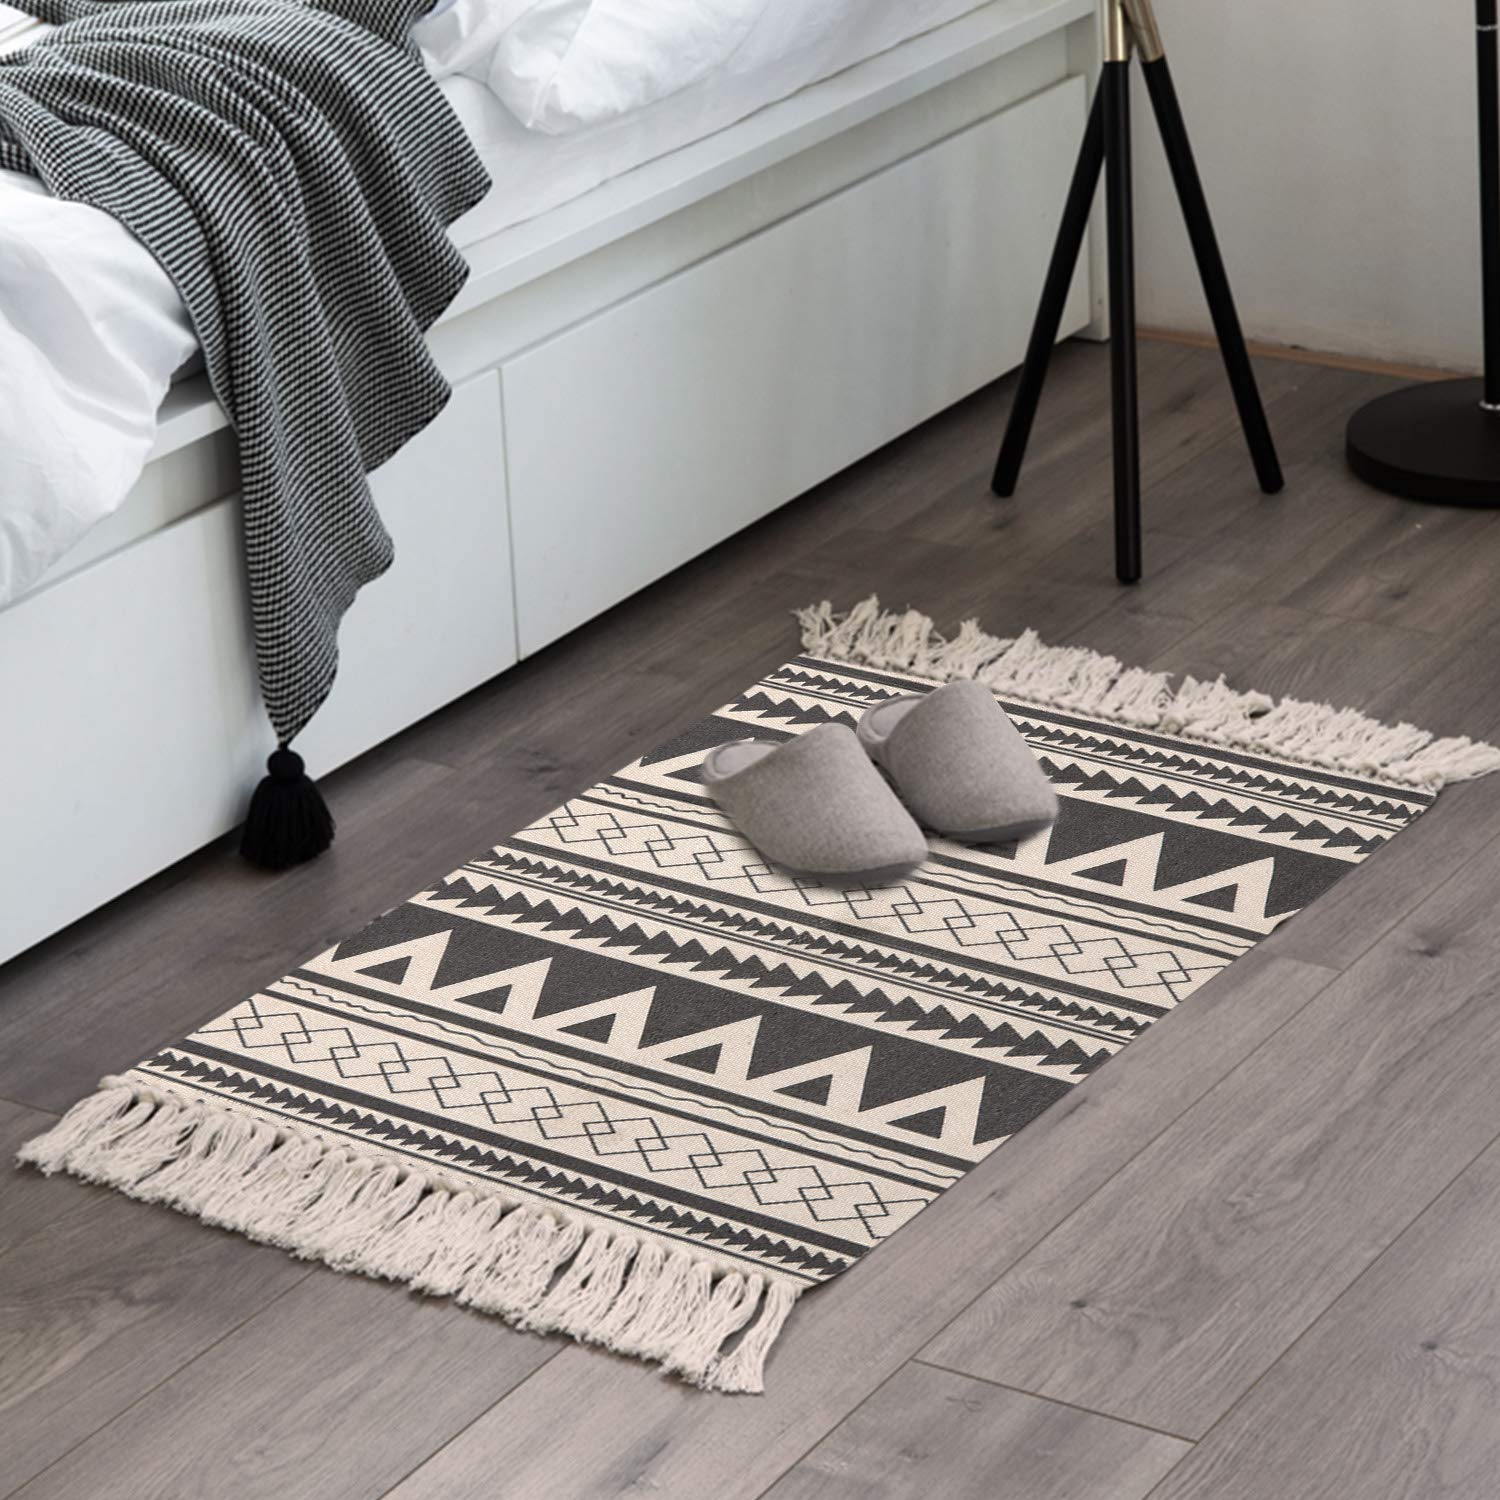 Kimode moroccan cotton area rug hand woven cream and black chic diamond print tassels throw rugs indoor door mat for bathroombedroomliving roomlaundry